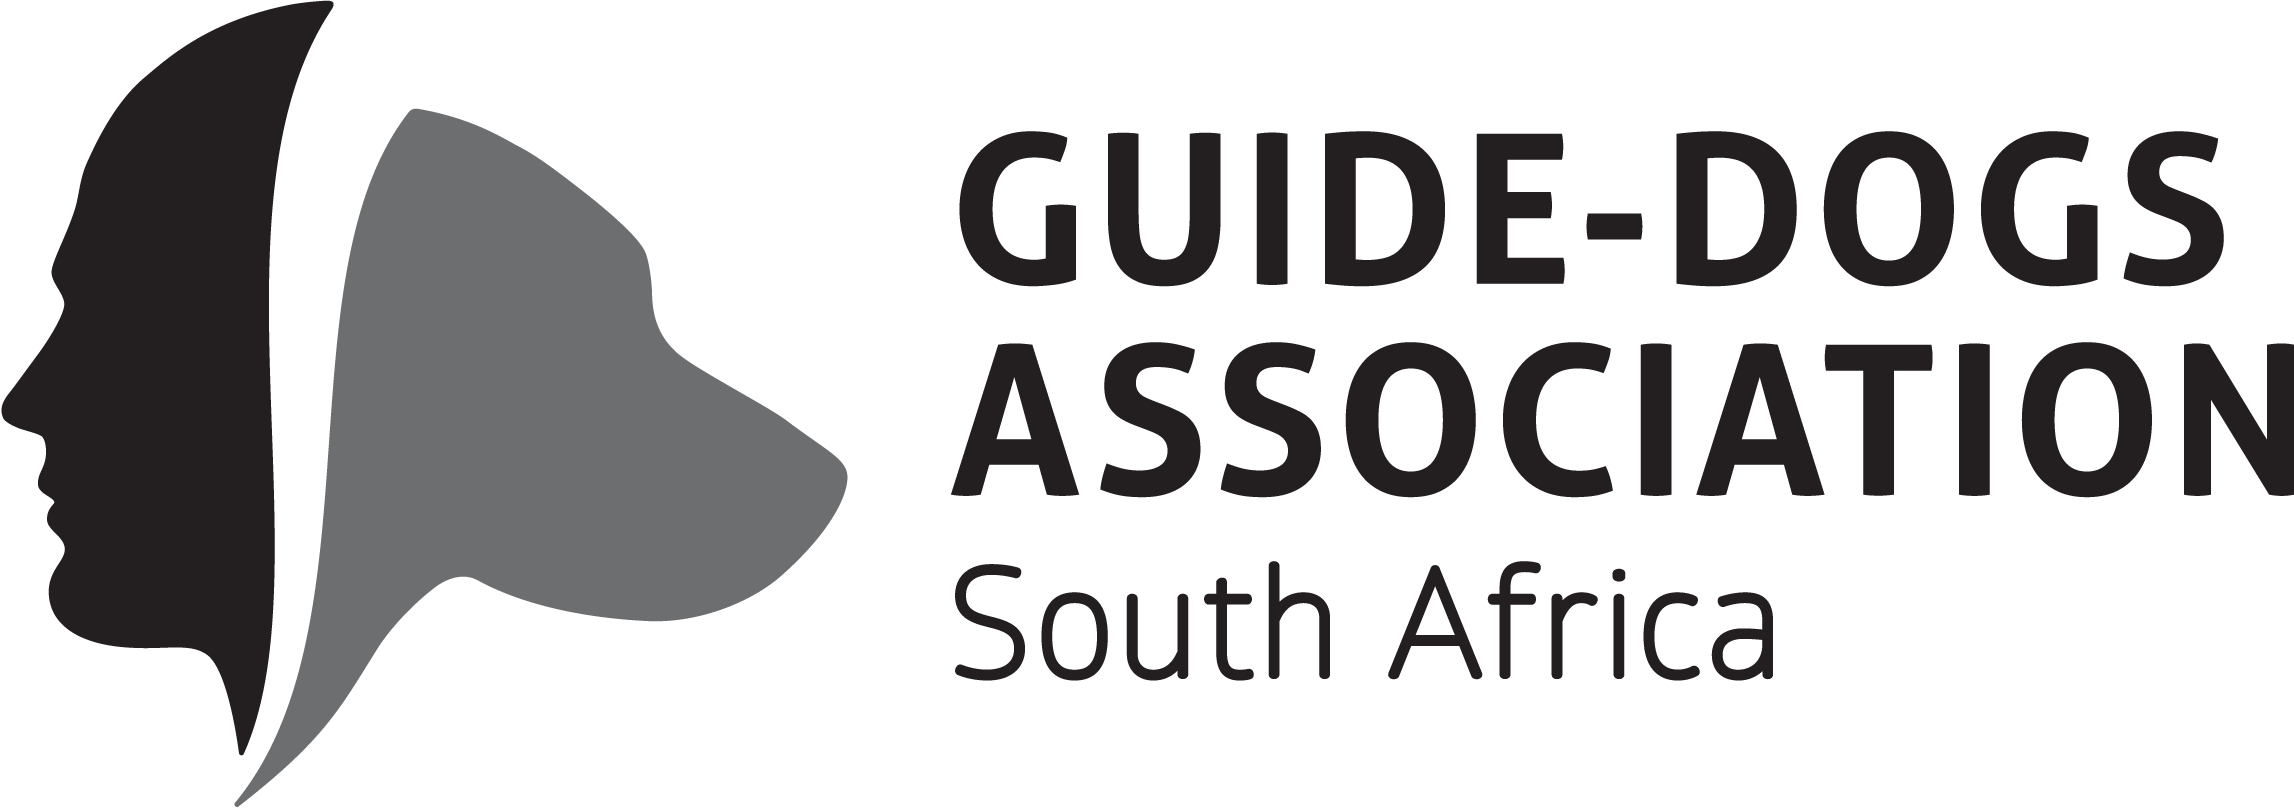 SportSpots Partner S A Guide-Dogs Association for the Blind